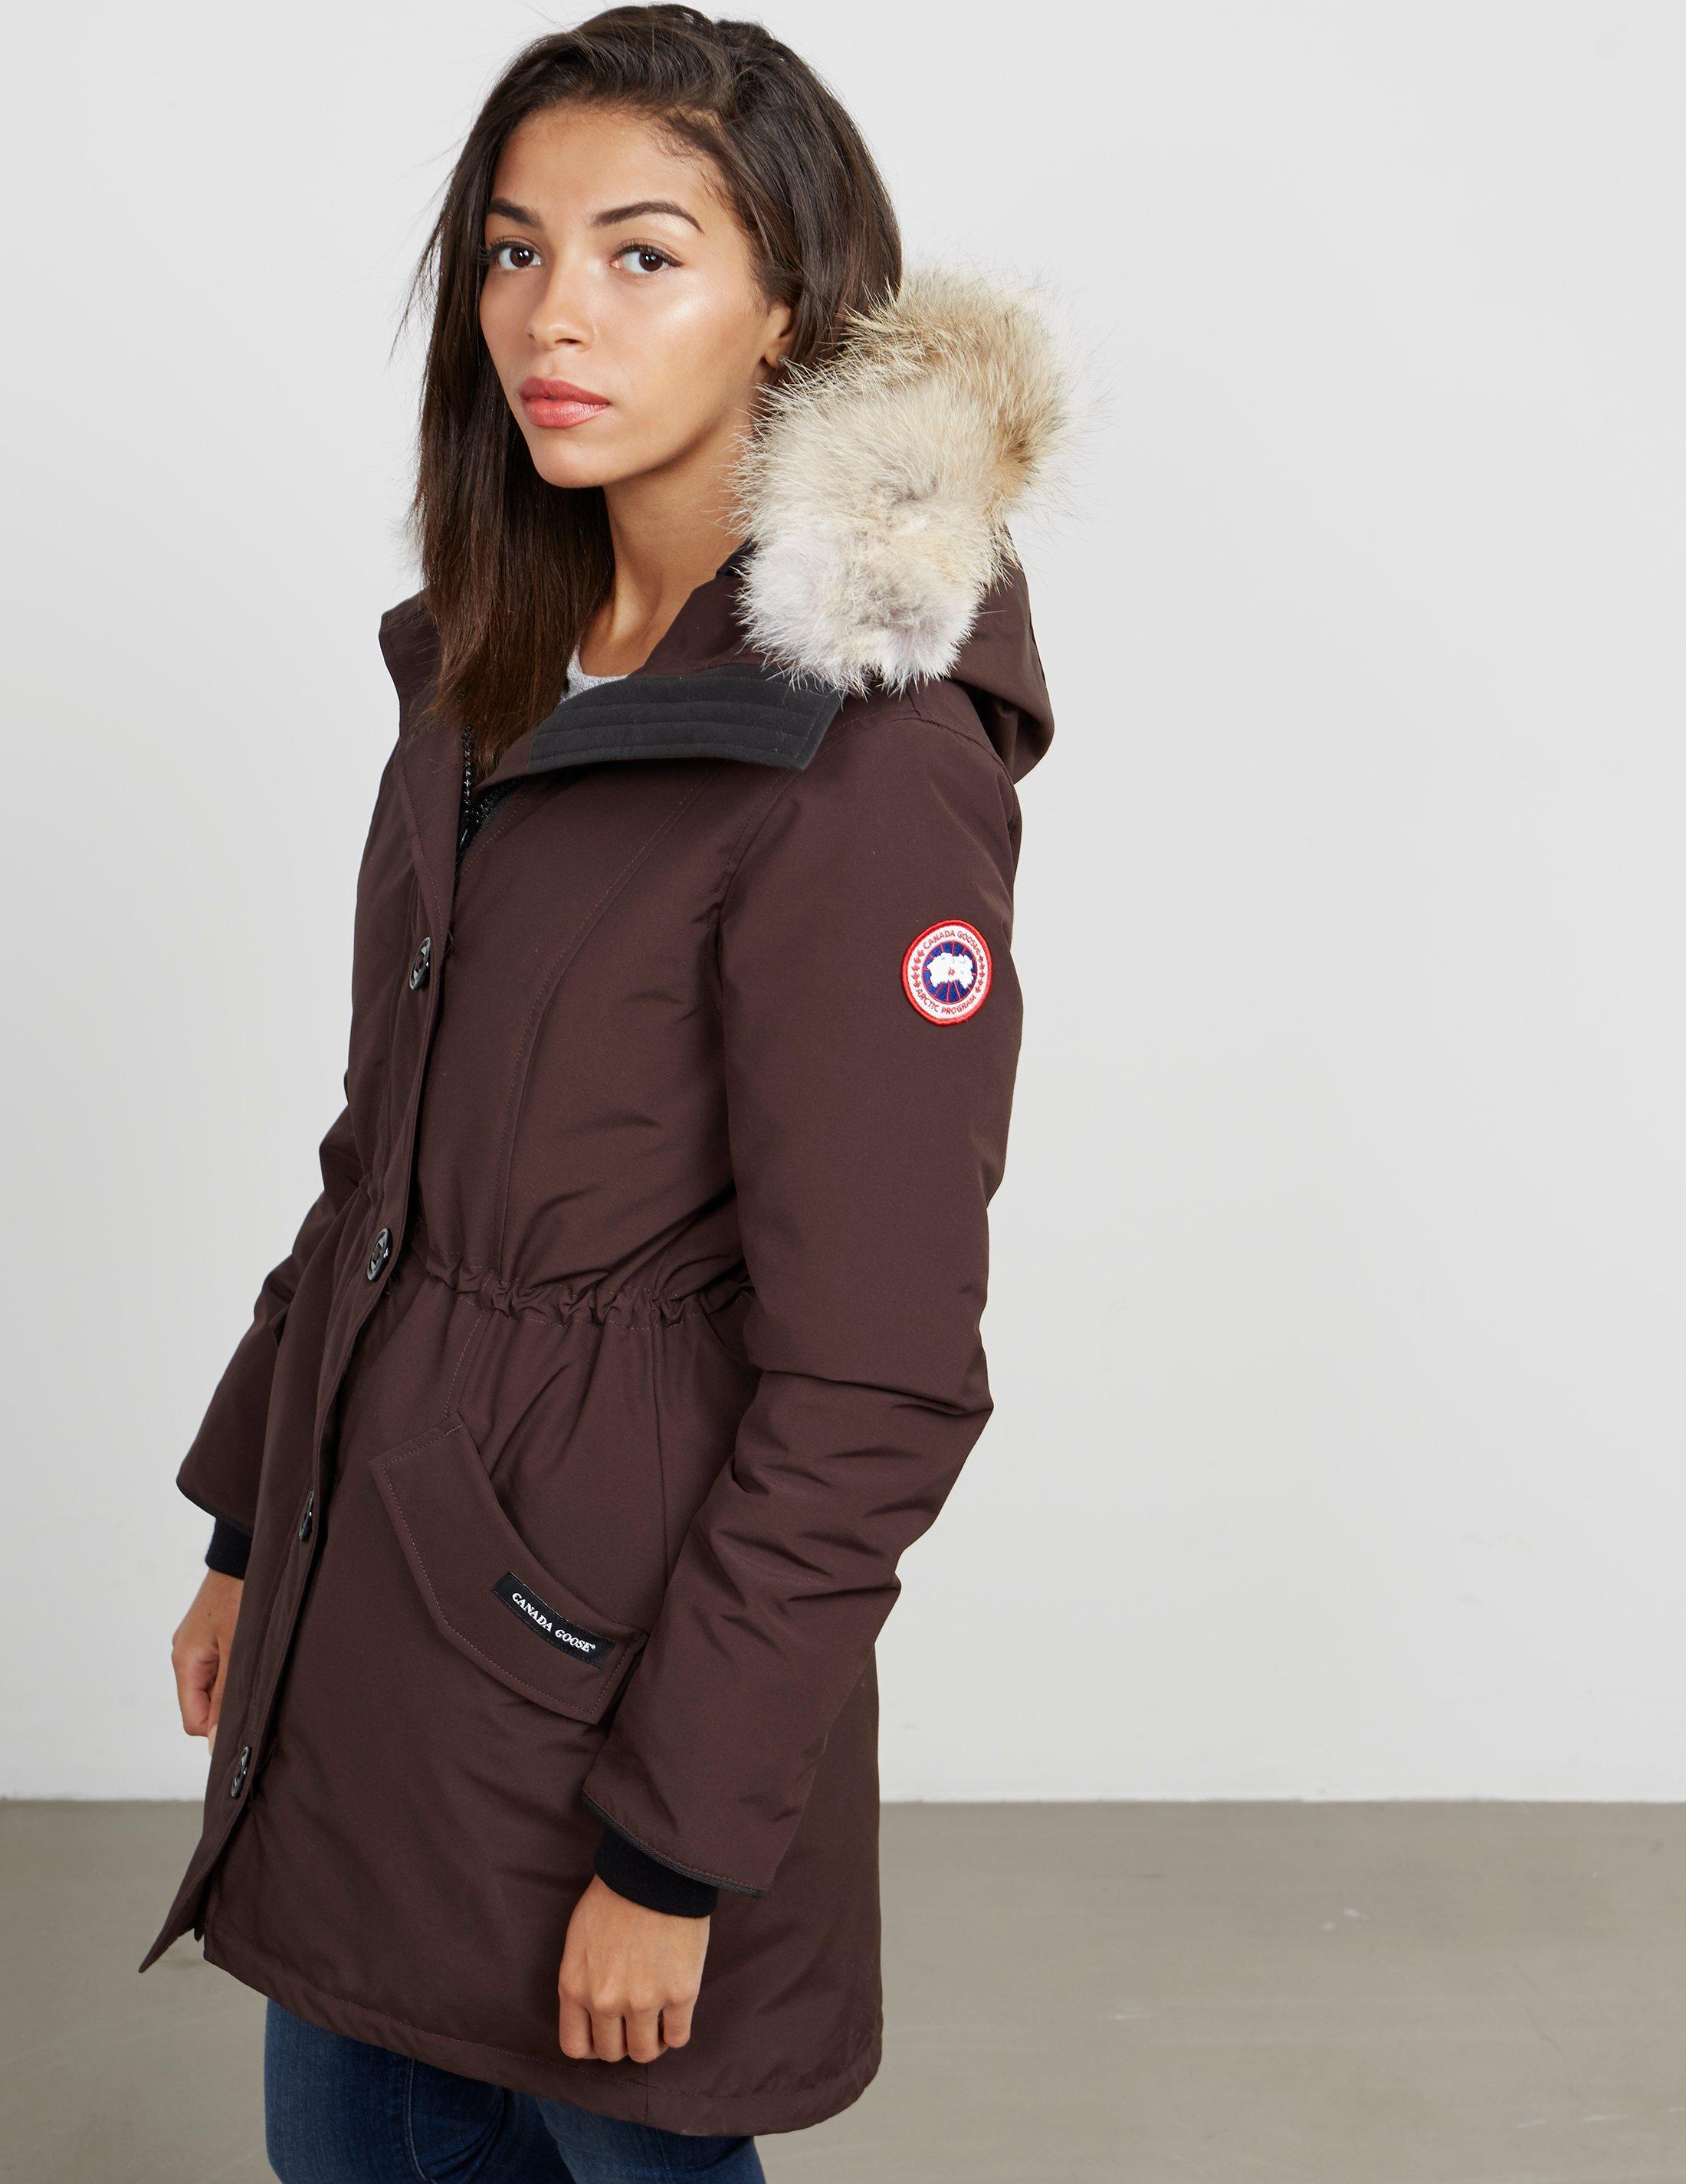 37d5b8a09550 Canada Goose Womens Rossclair Padded Parka Jacket Brown, Brown in ...